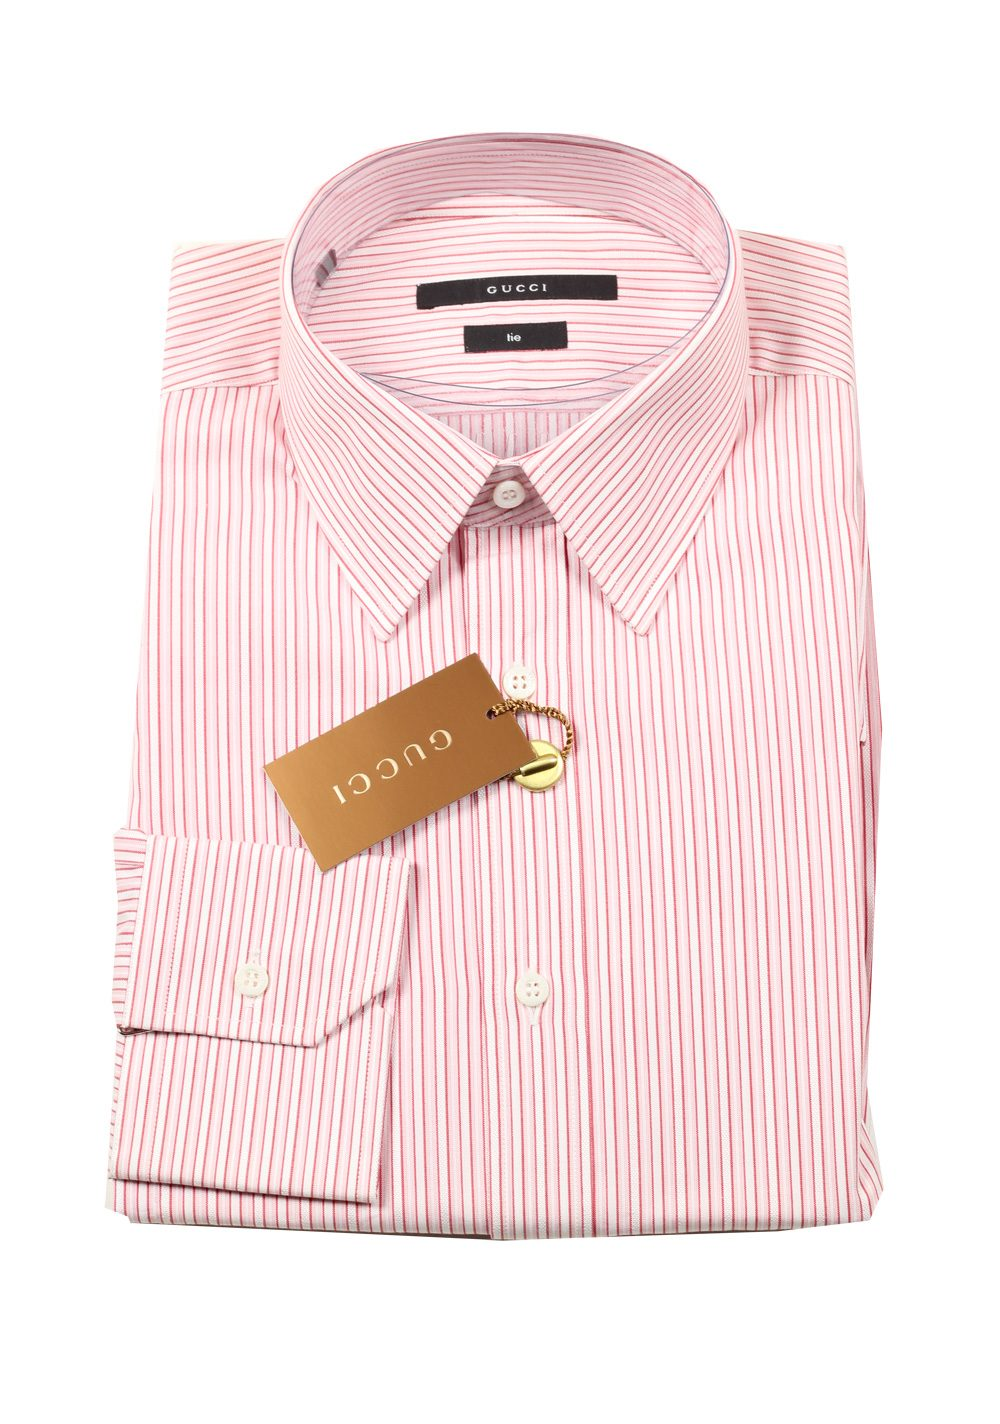 Gucci striped pink dress shirt size 40 15 75 u s tie for Size 15 dress shirt